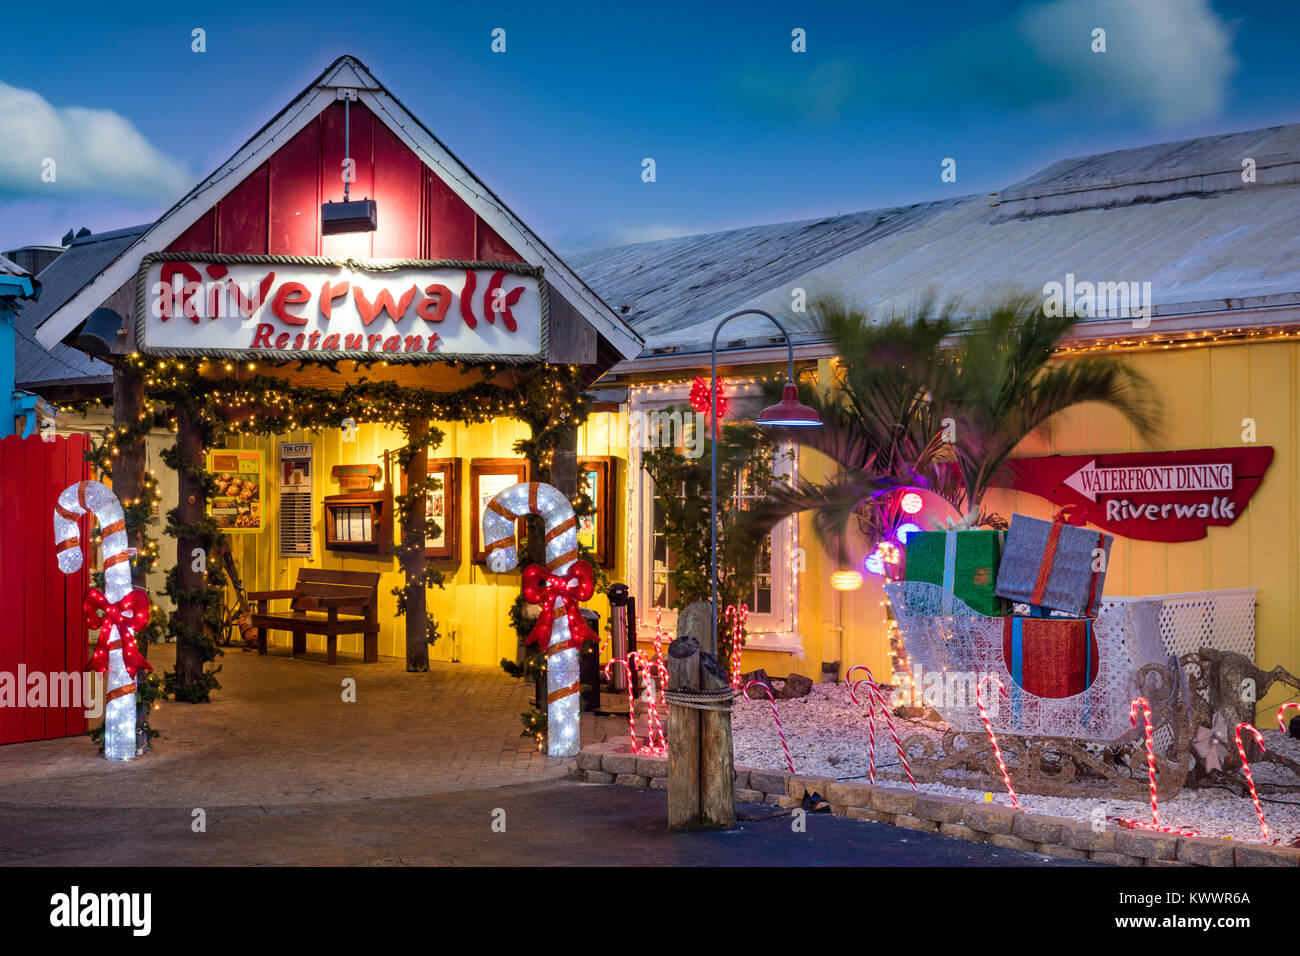 Christmas decorations at the Entrance to Riverwalk Restaurant - part of Tin City, Naples, Florida, USA - Stock Image